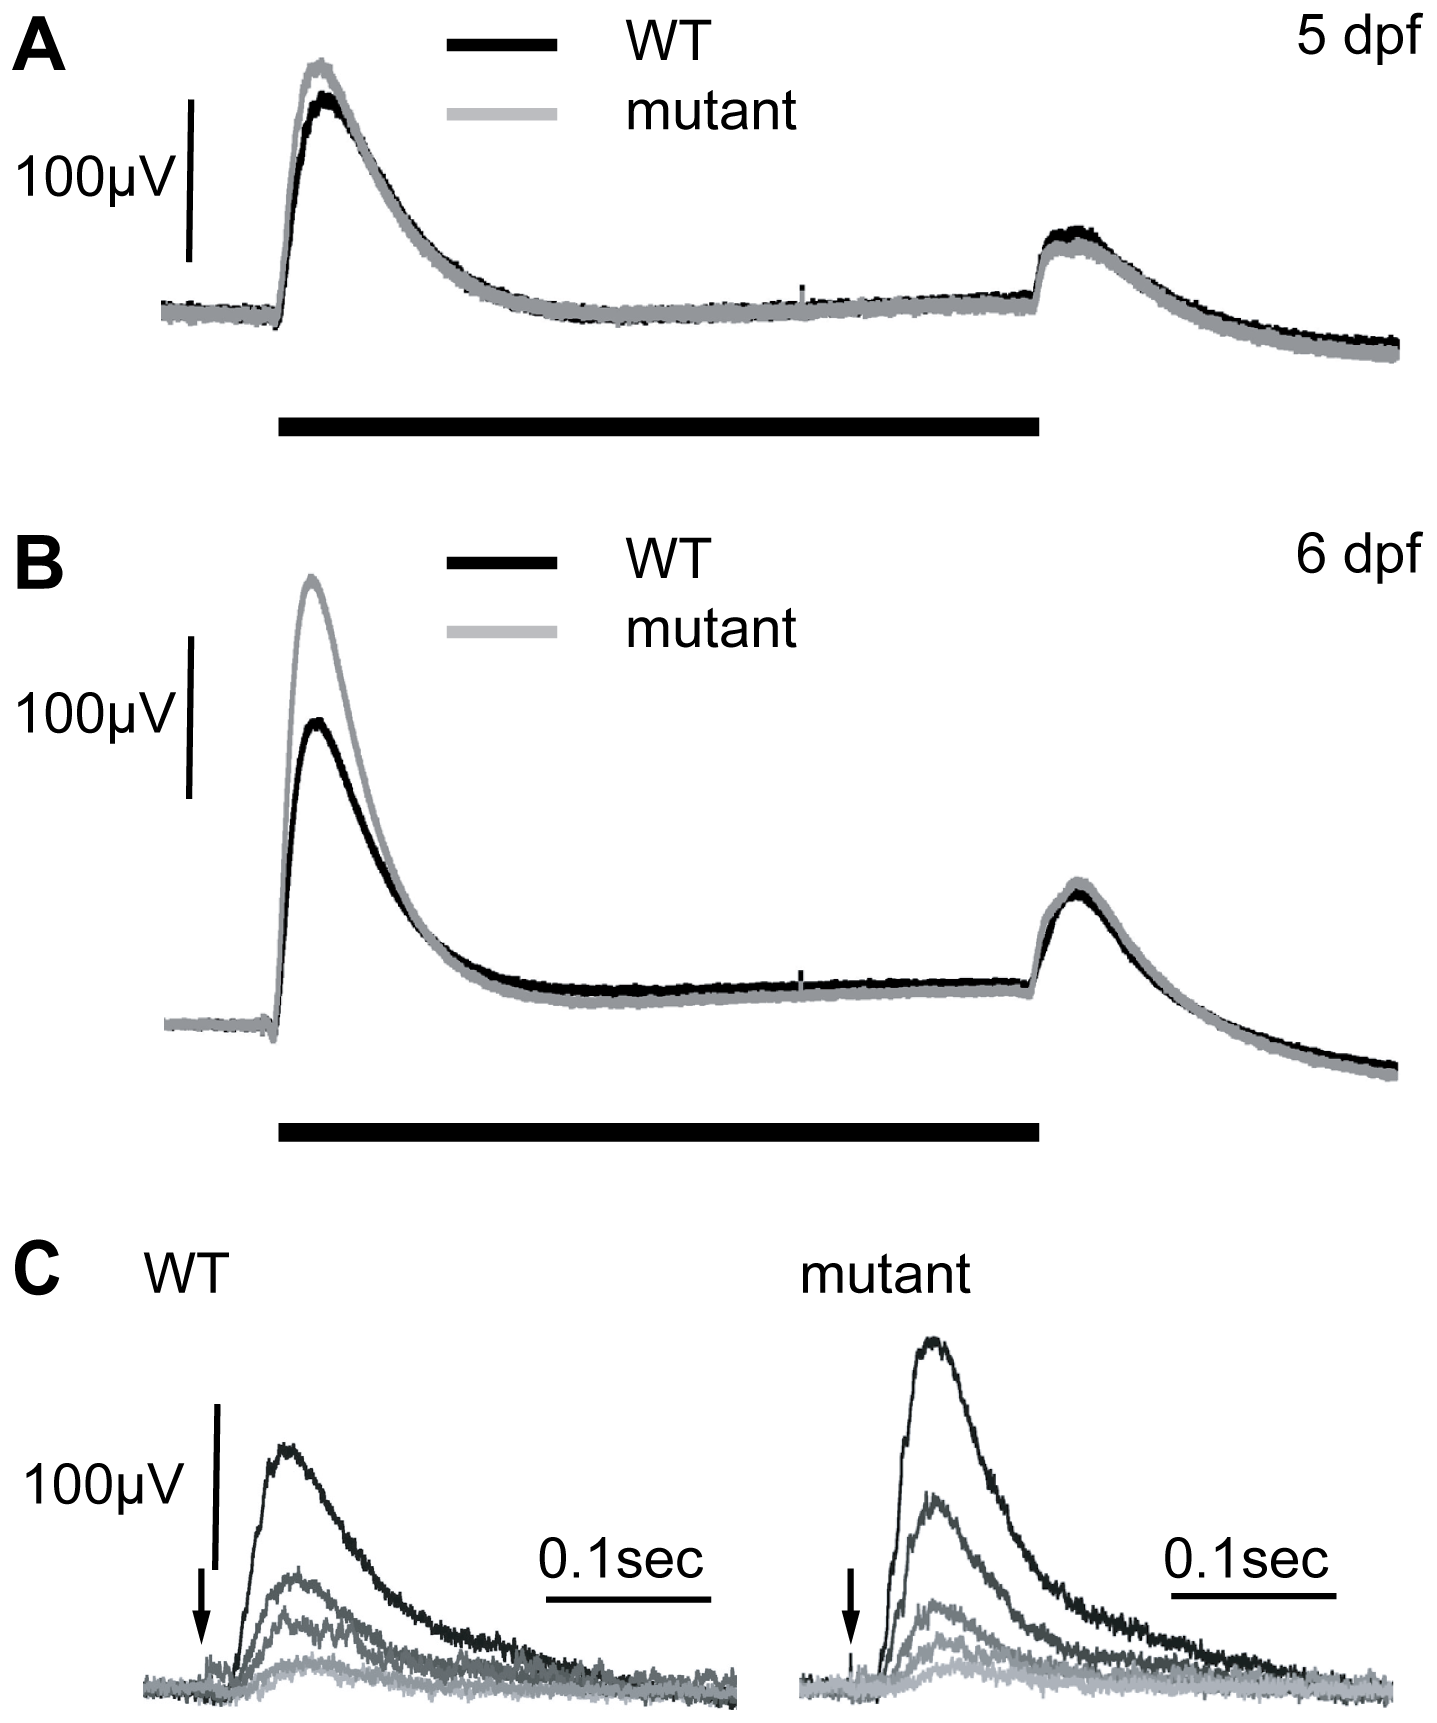 Electroretinograms show an increase in the b-wave response in mutants at 6 dpf.